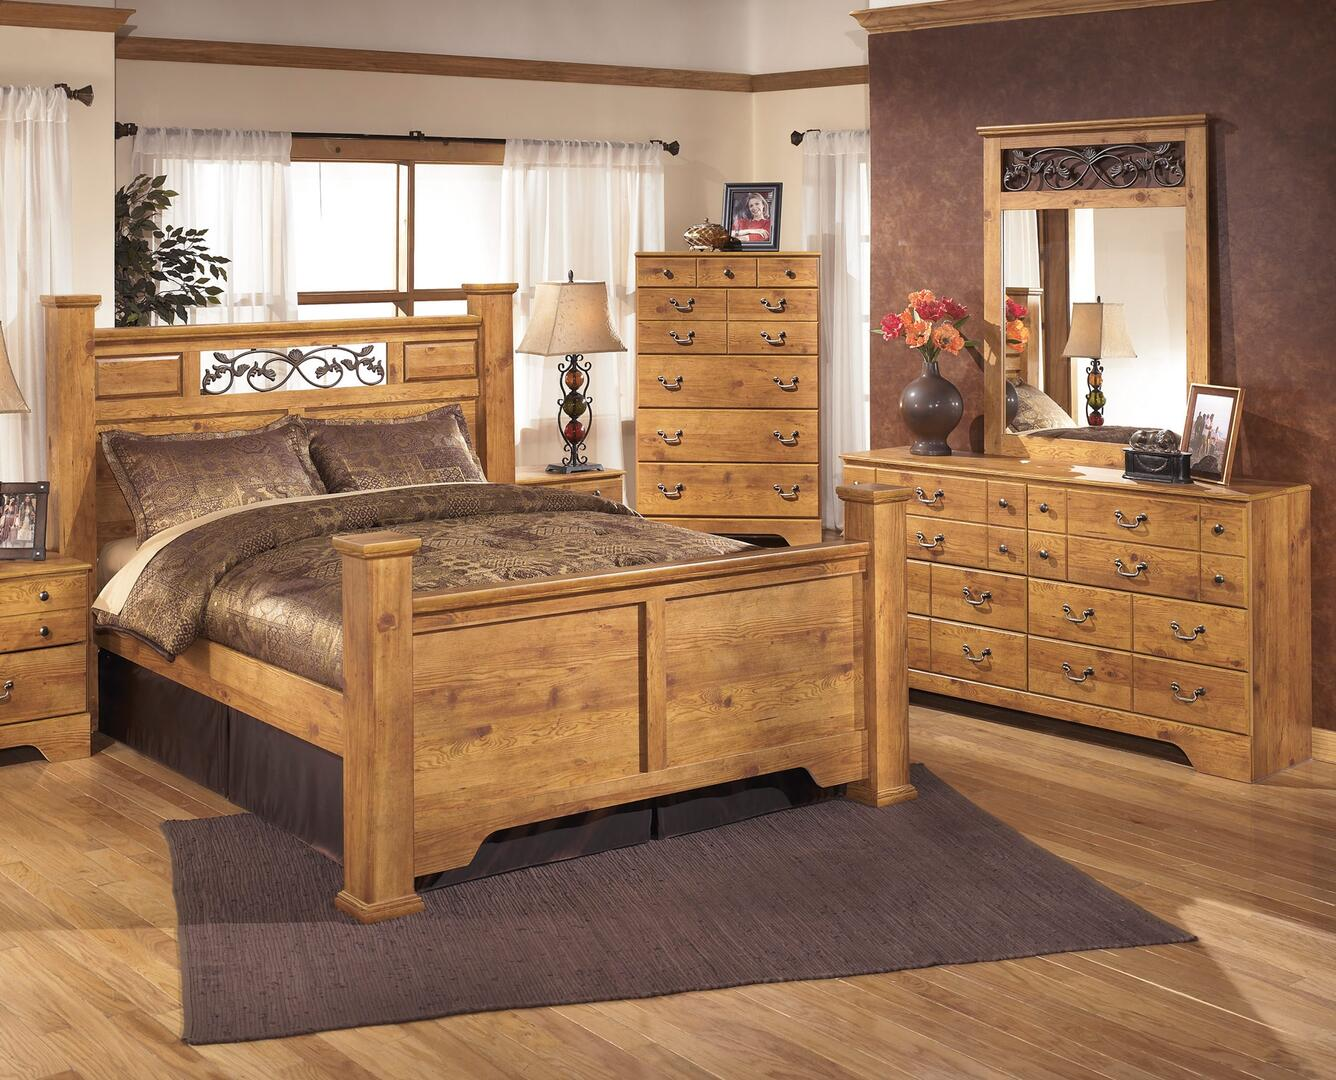 Signature Design by Ashley Bittersweet 4 Piece King Size Bedroom Set